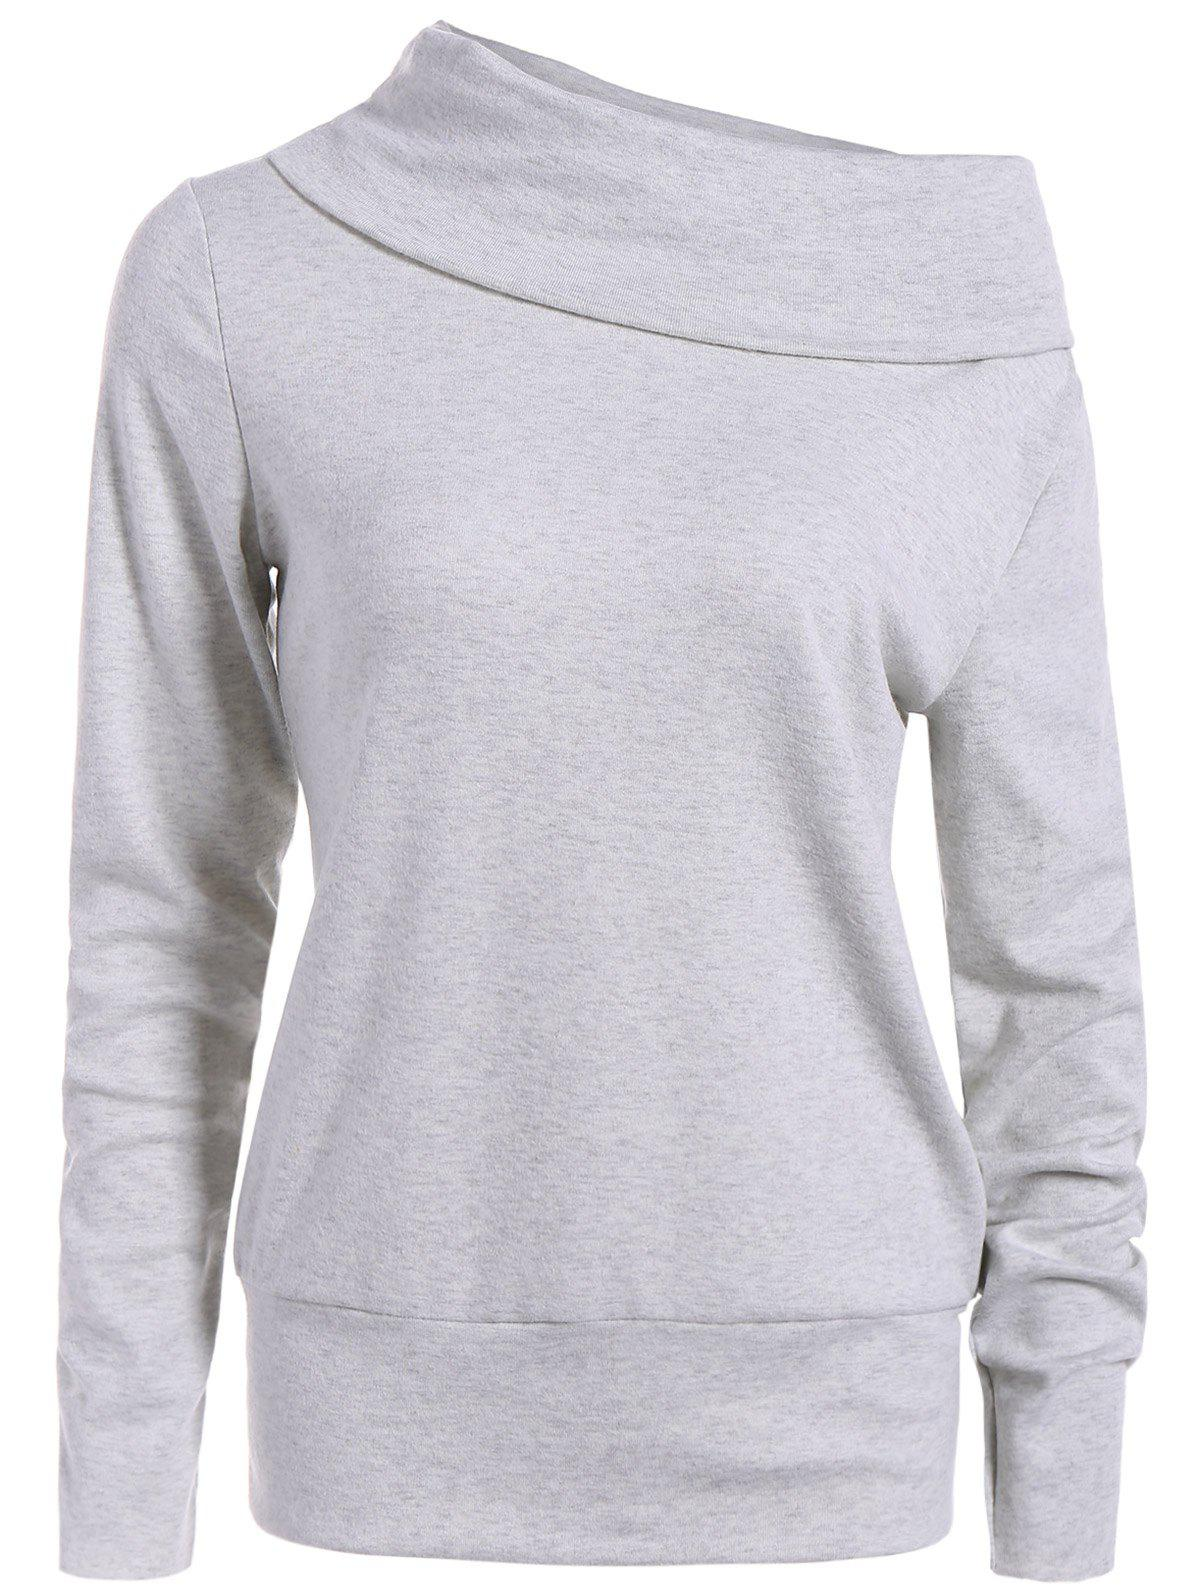 New High Neck Long Sleeve Sweatshirt